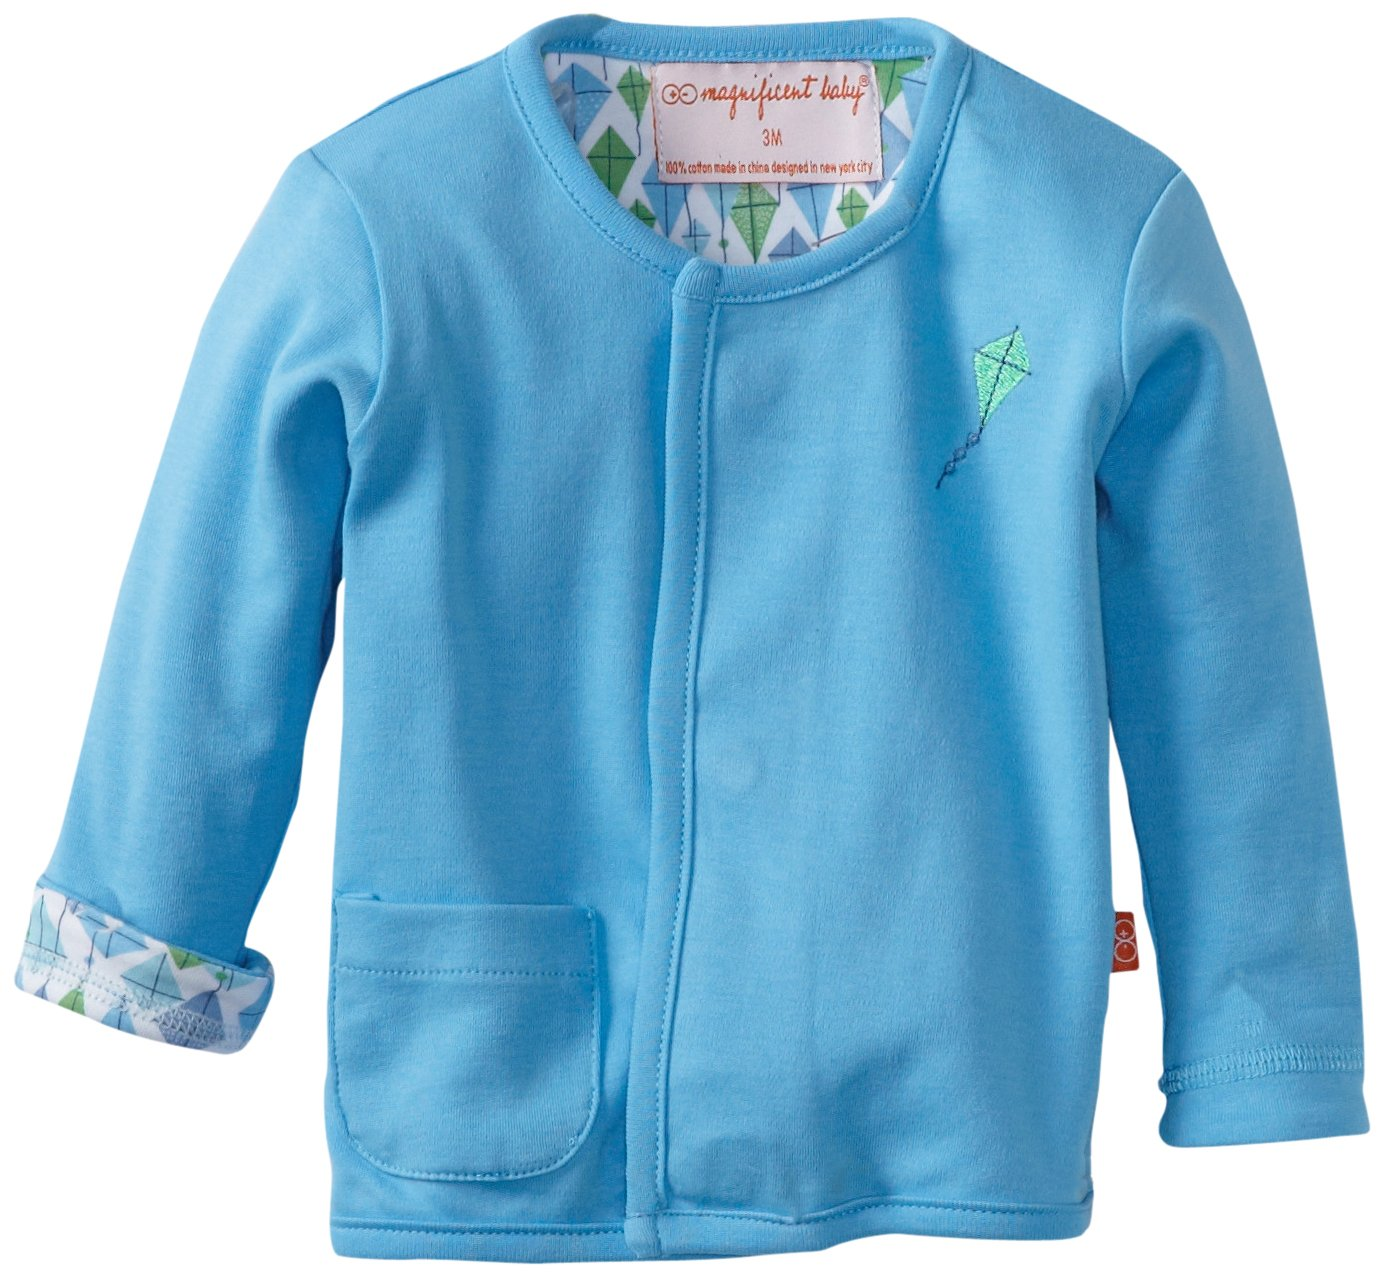 Magnificent Baby Boy's Kites Reversible Cardigan, Kites, 12M 2205B